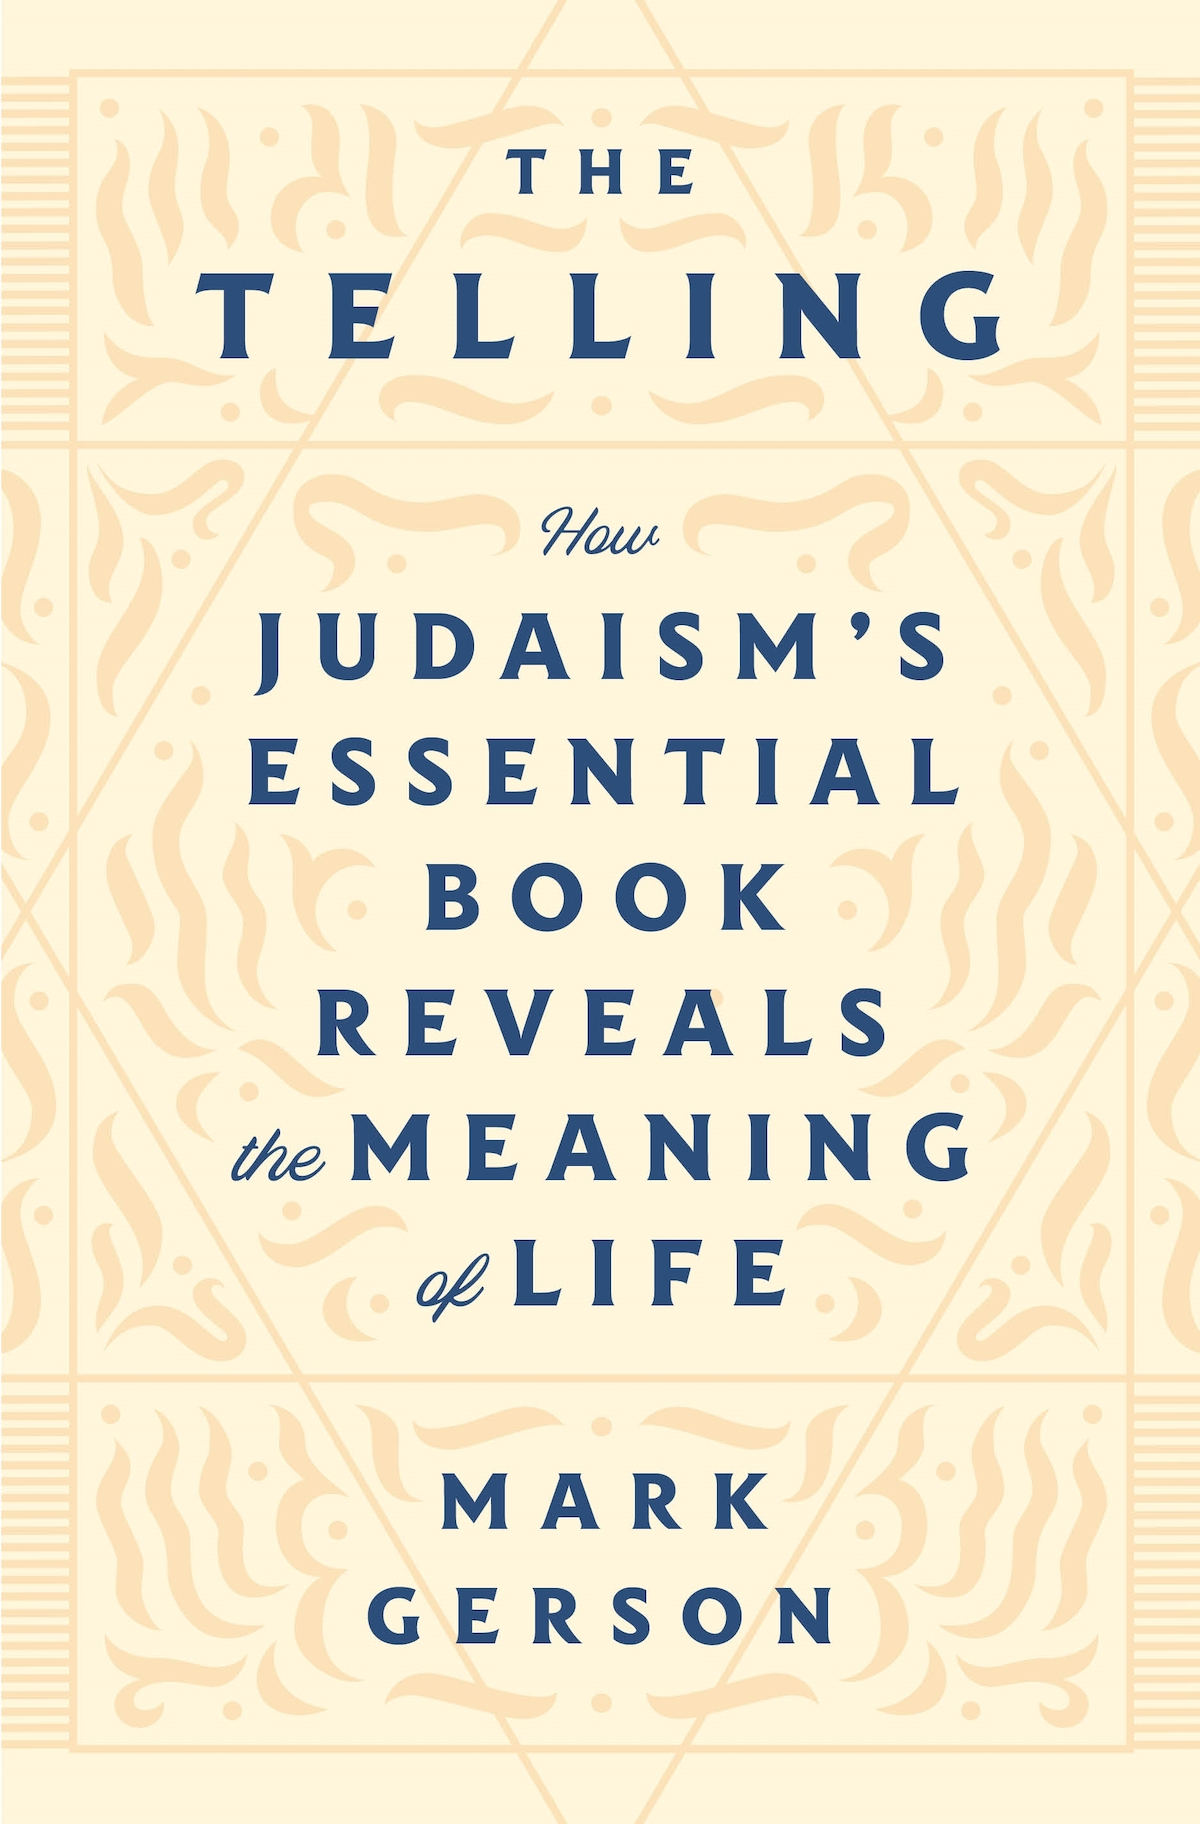 The Telling Book Image